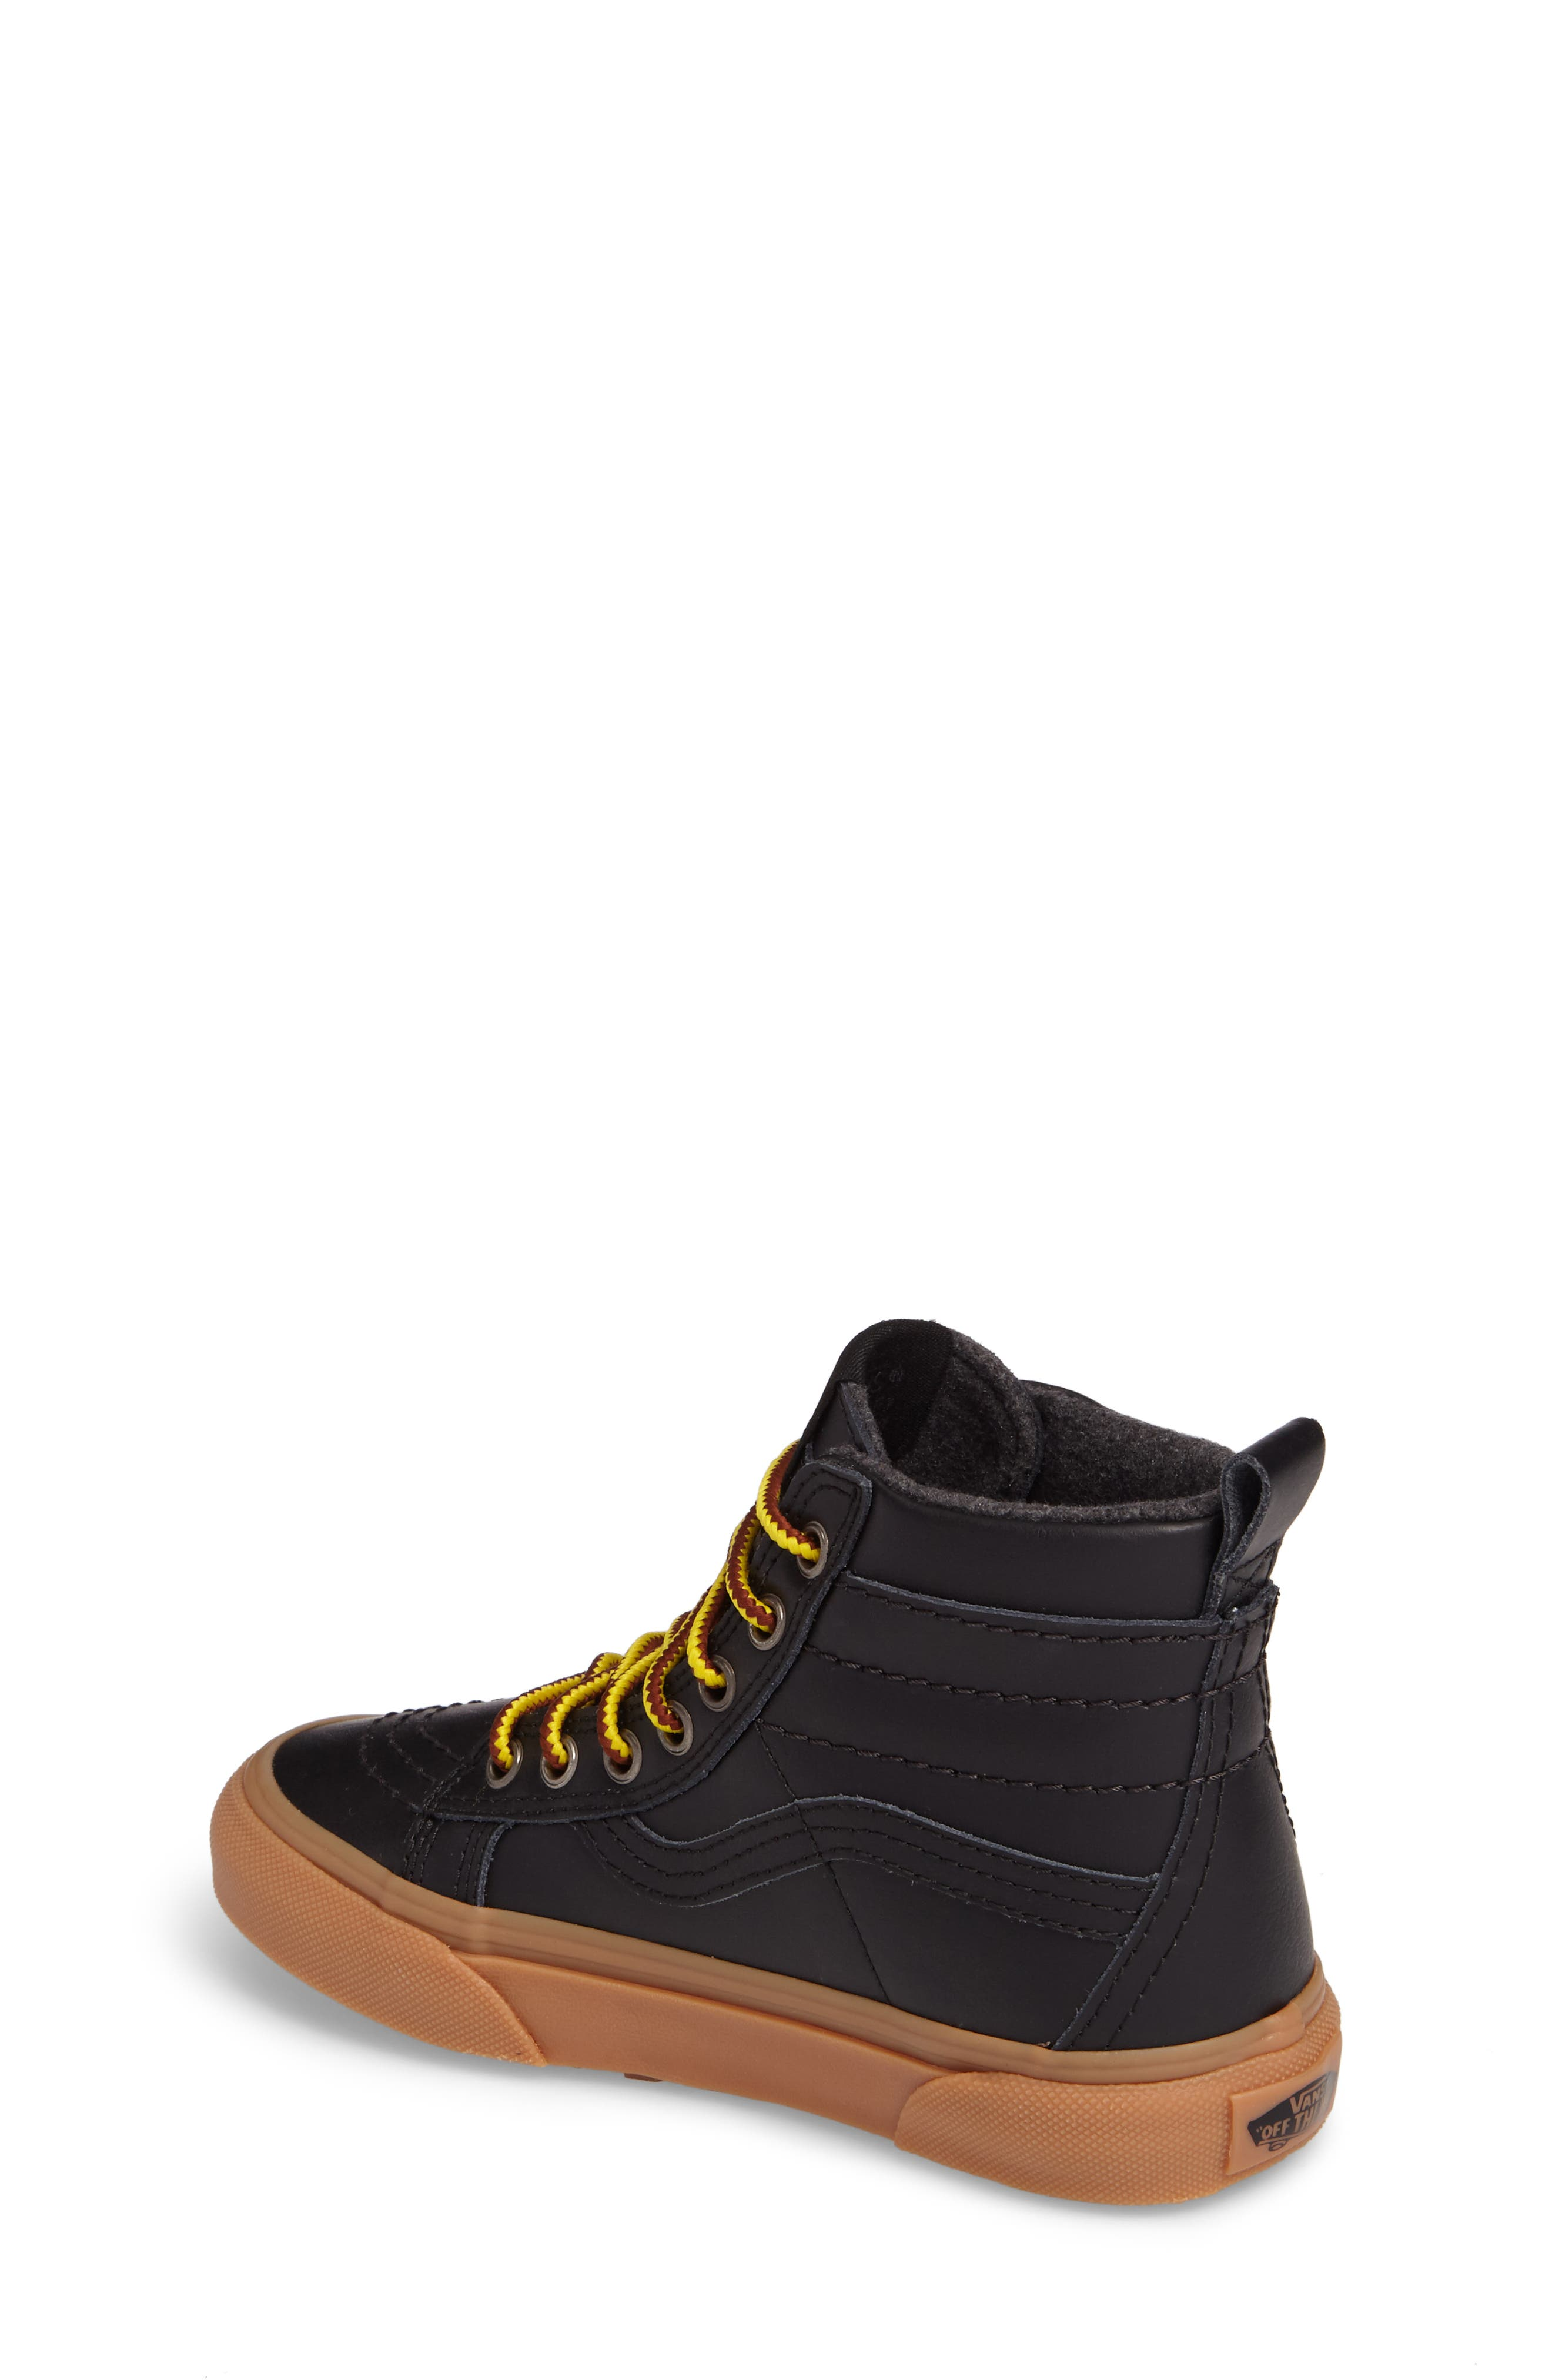 SK8-Hi Sneaker,                             Alternate thumbnail 13, color,